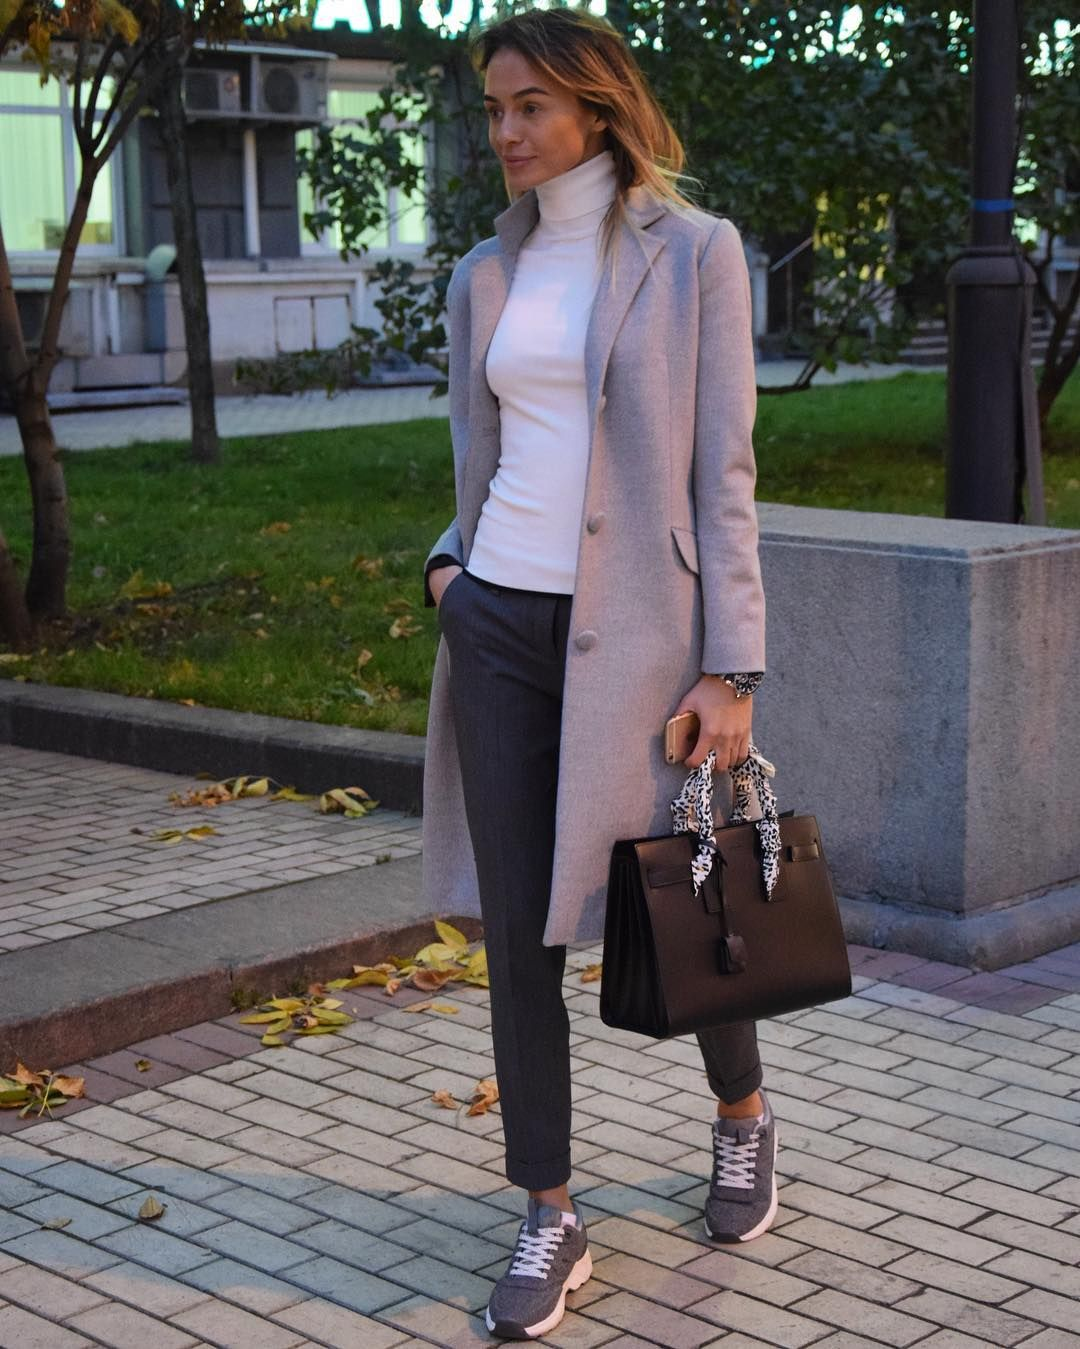 Stylish Office Outfits For Ladies | Fall casual office ...